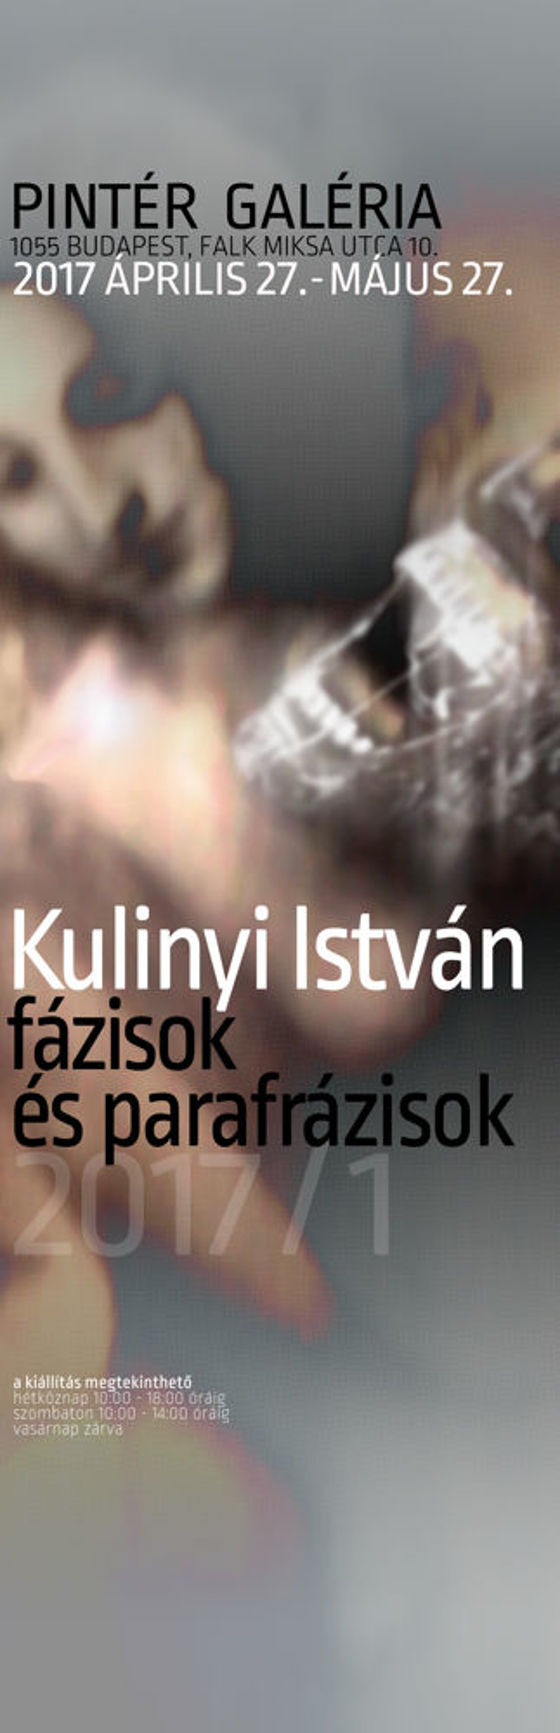 EXHIBITION OF ISTVÁN KULINYI FROM 27TH APRIL!